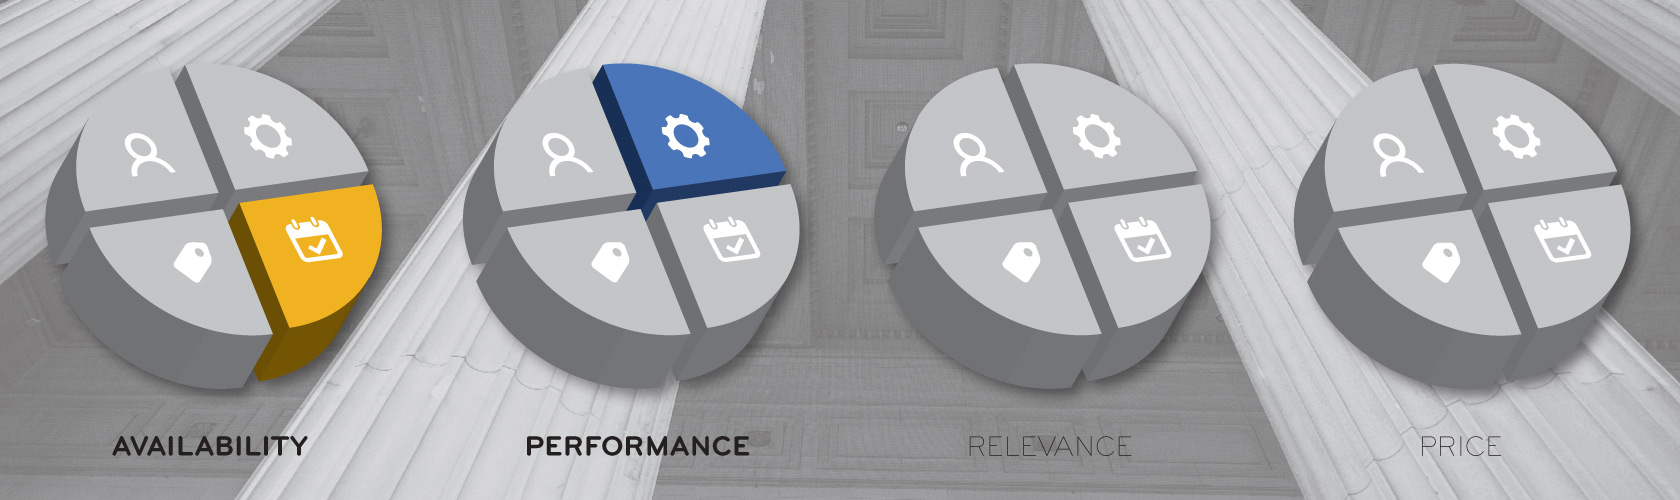 four pillars availability performance